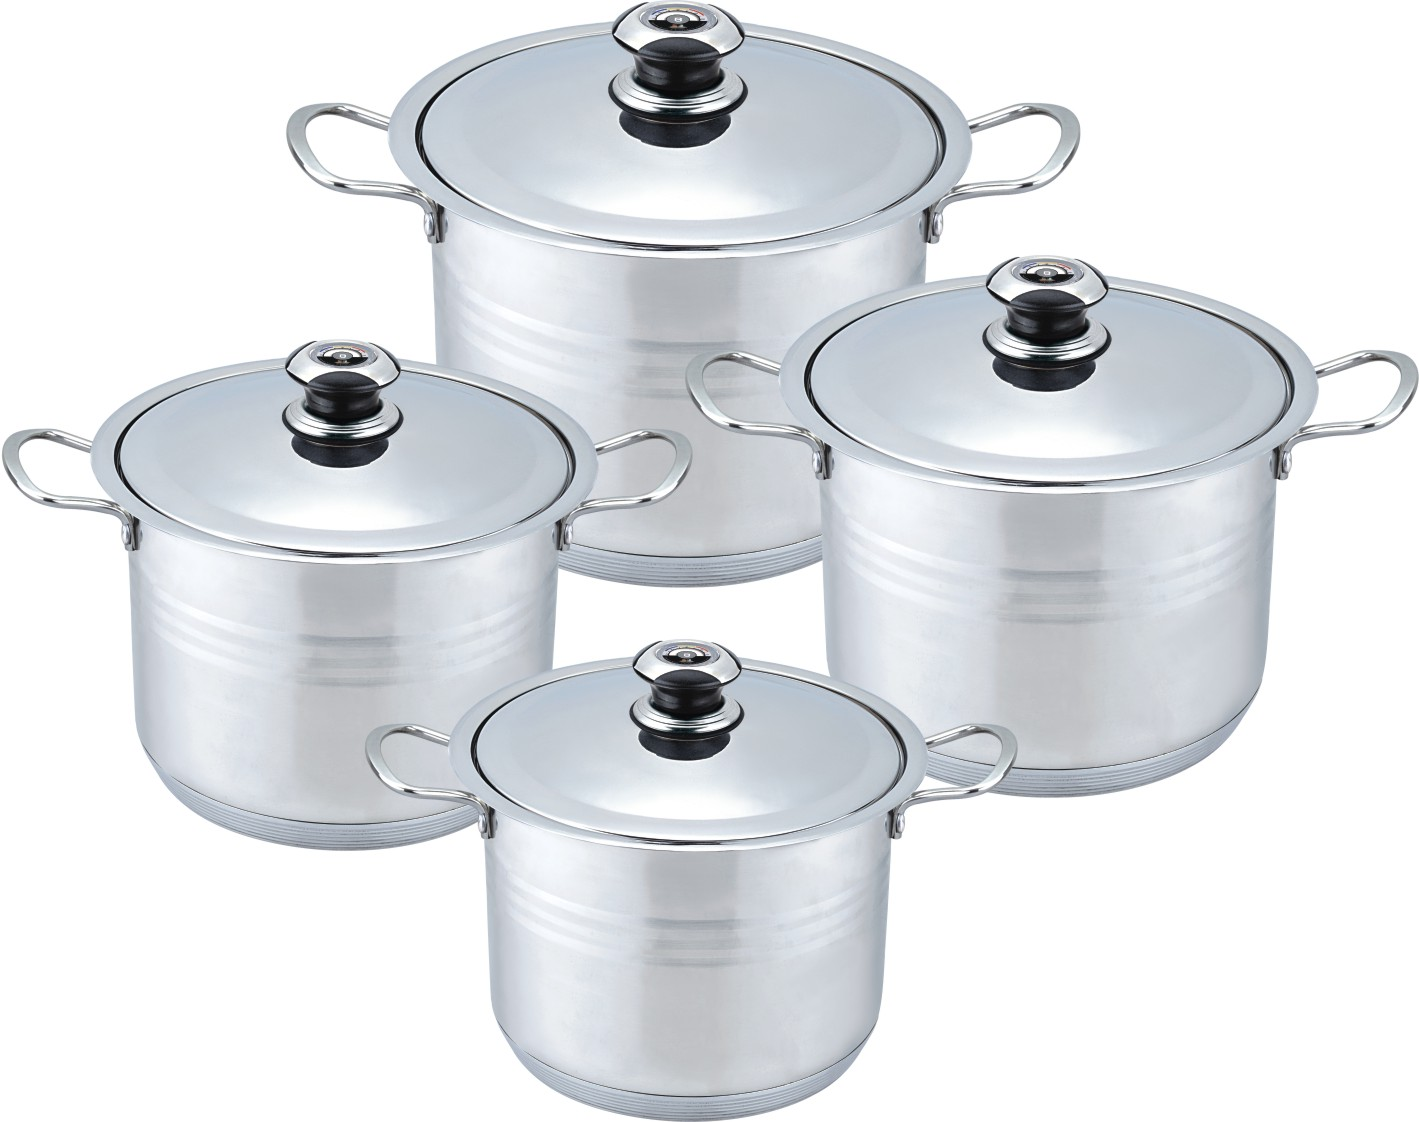 Portable Wide Edge Stock Pot